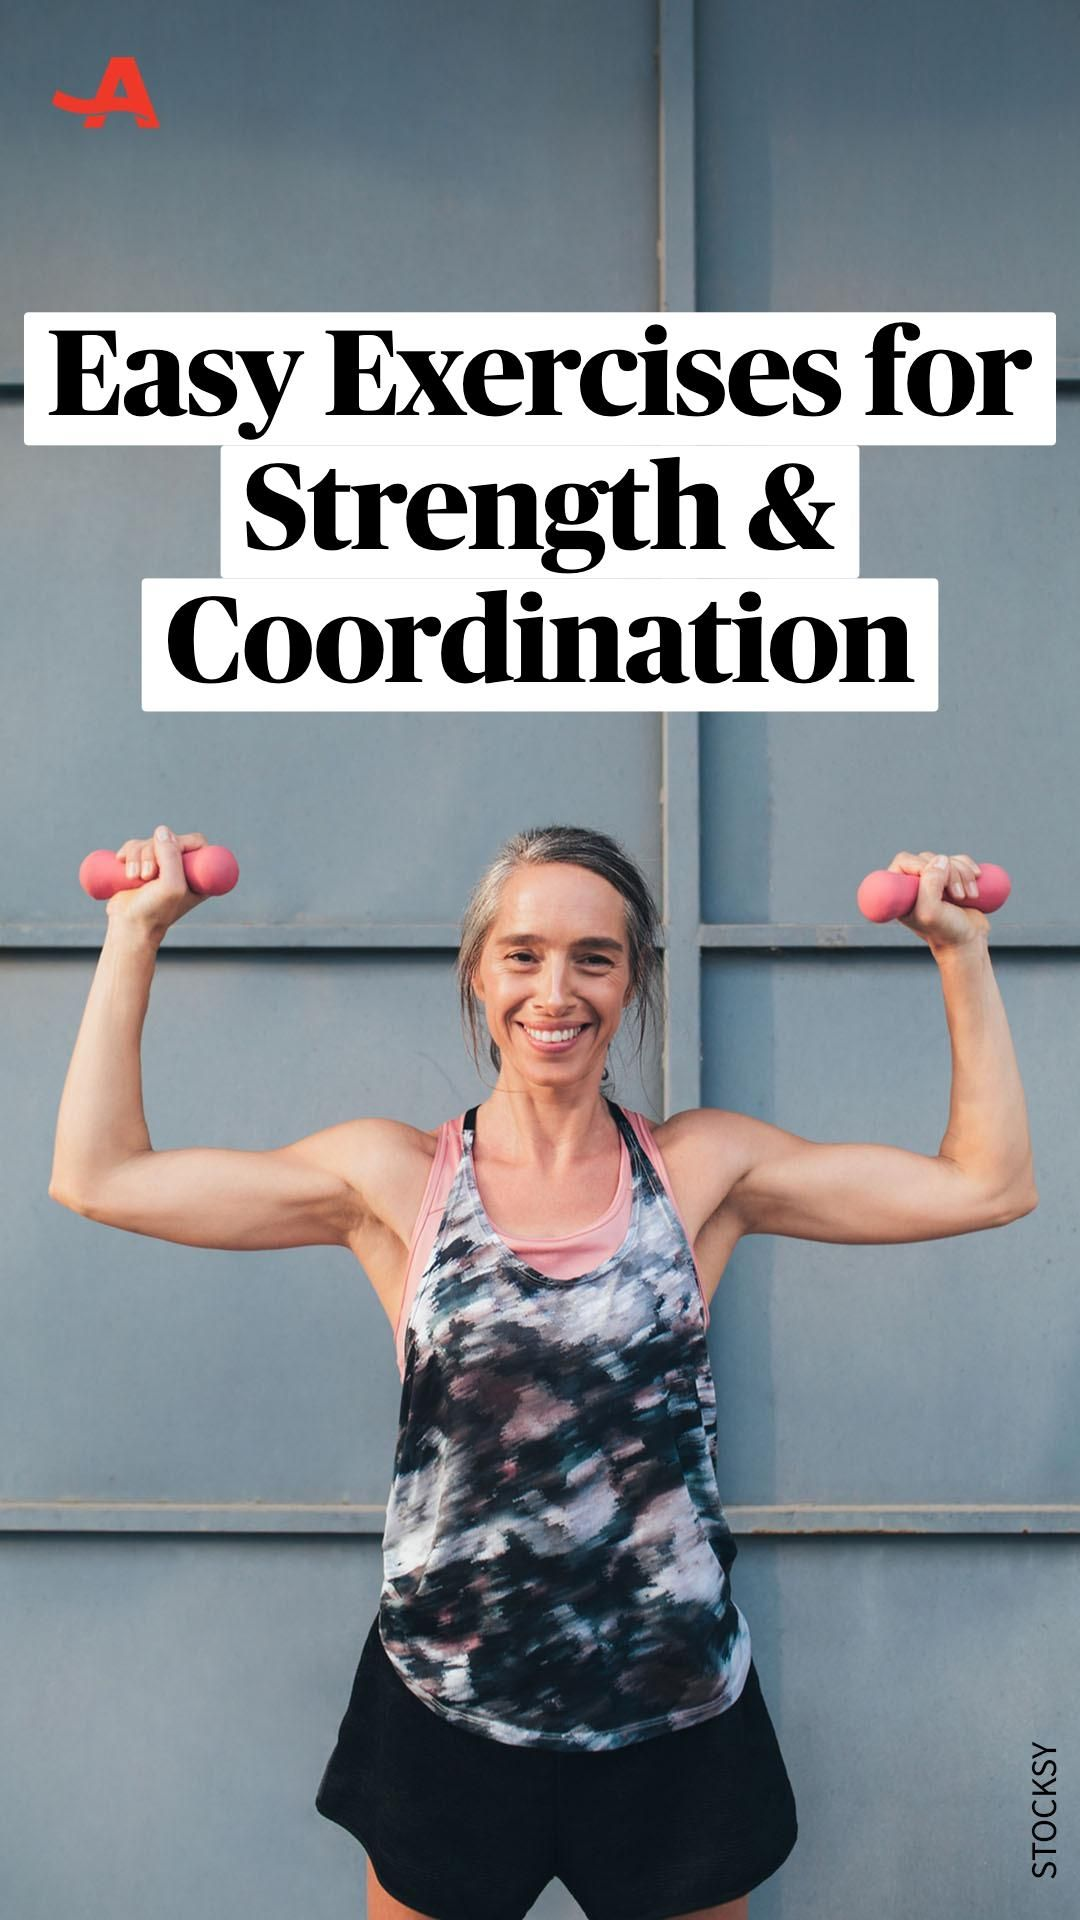 Easy Exercises for Strength & Coordination